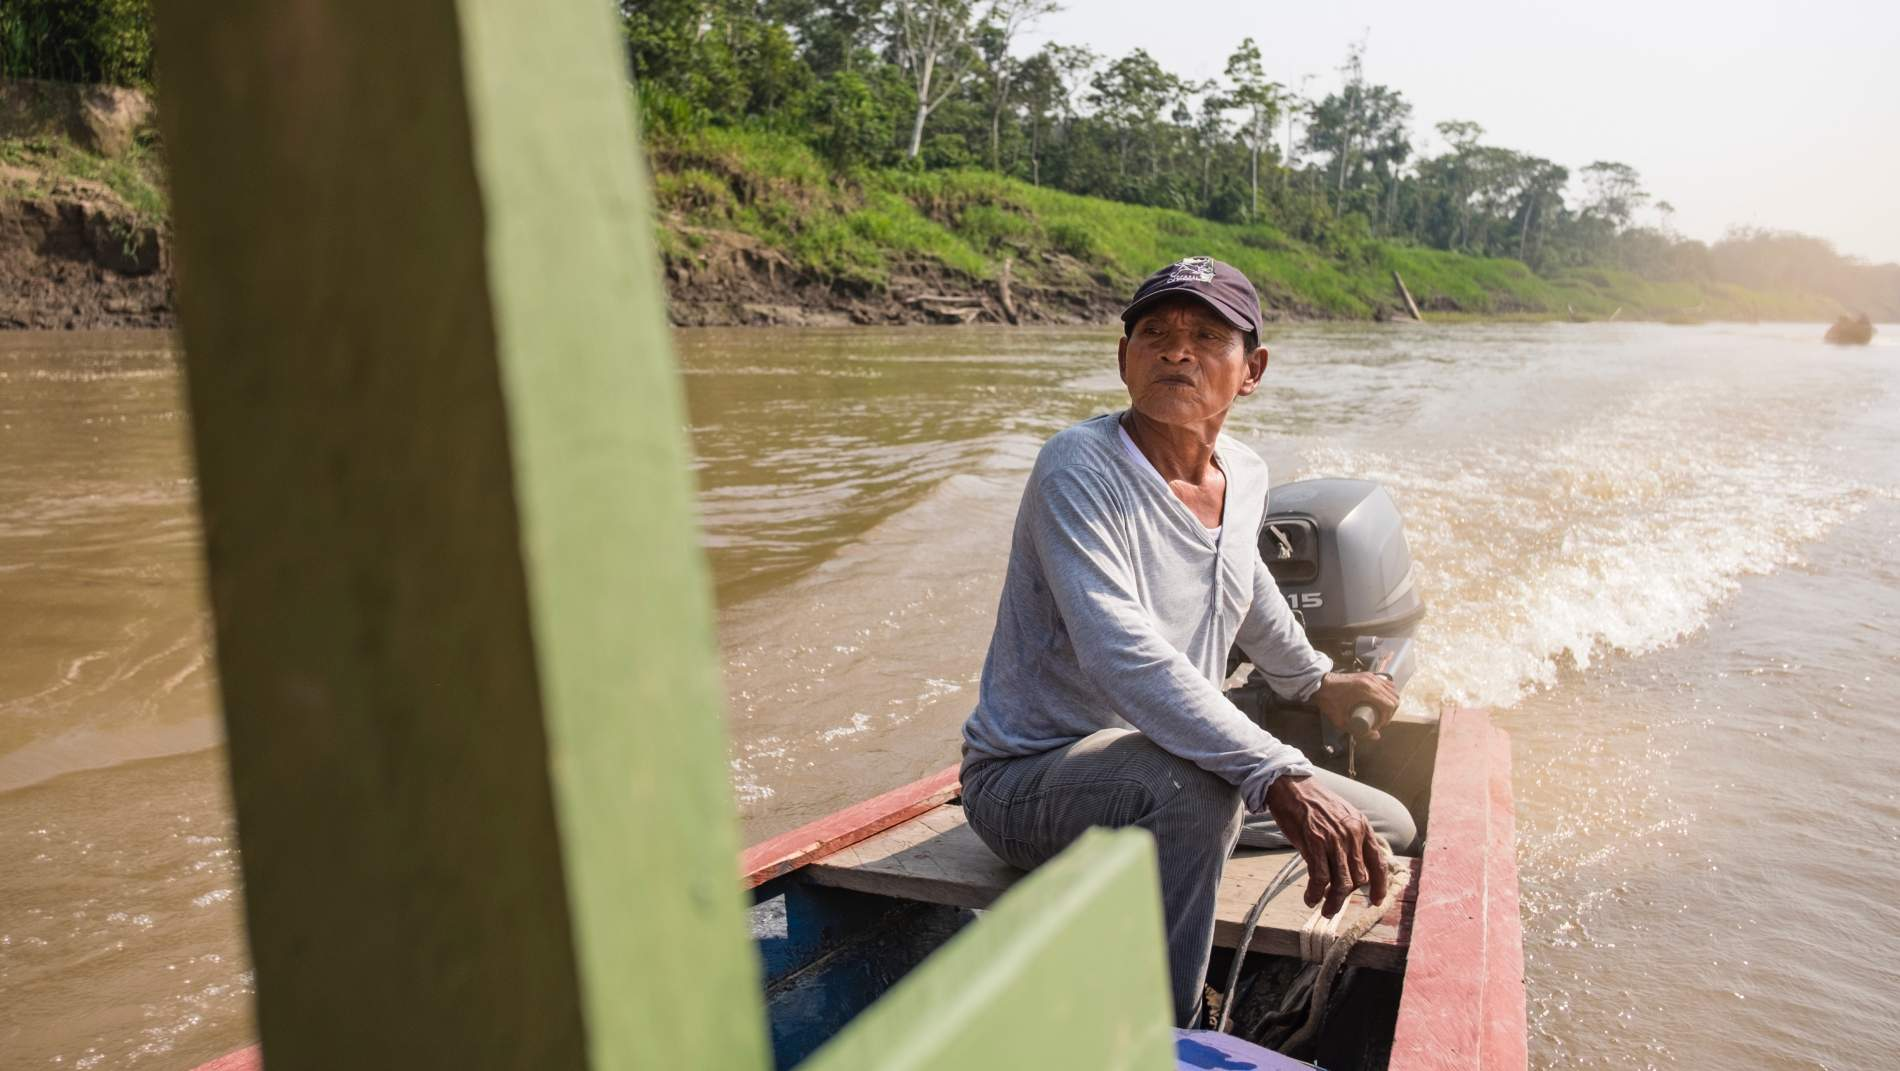 3 days between anacondas and pink dolphins in the Peruvian Amazon